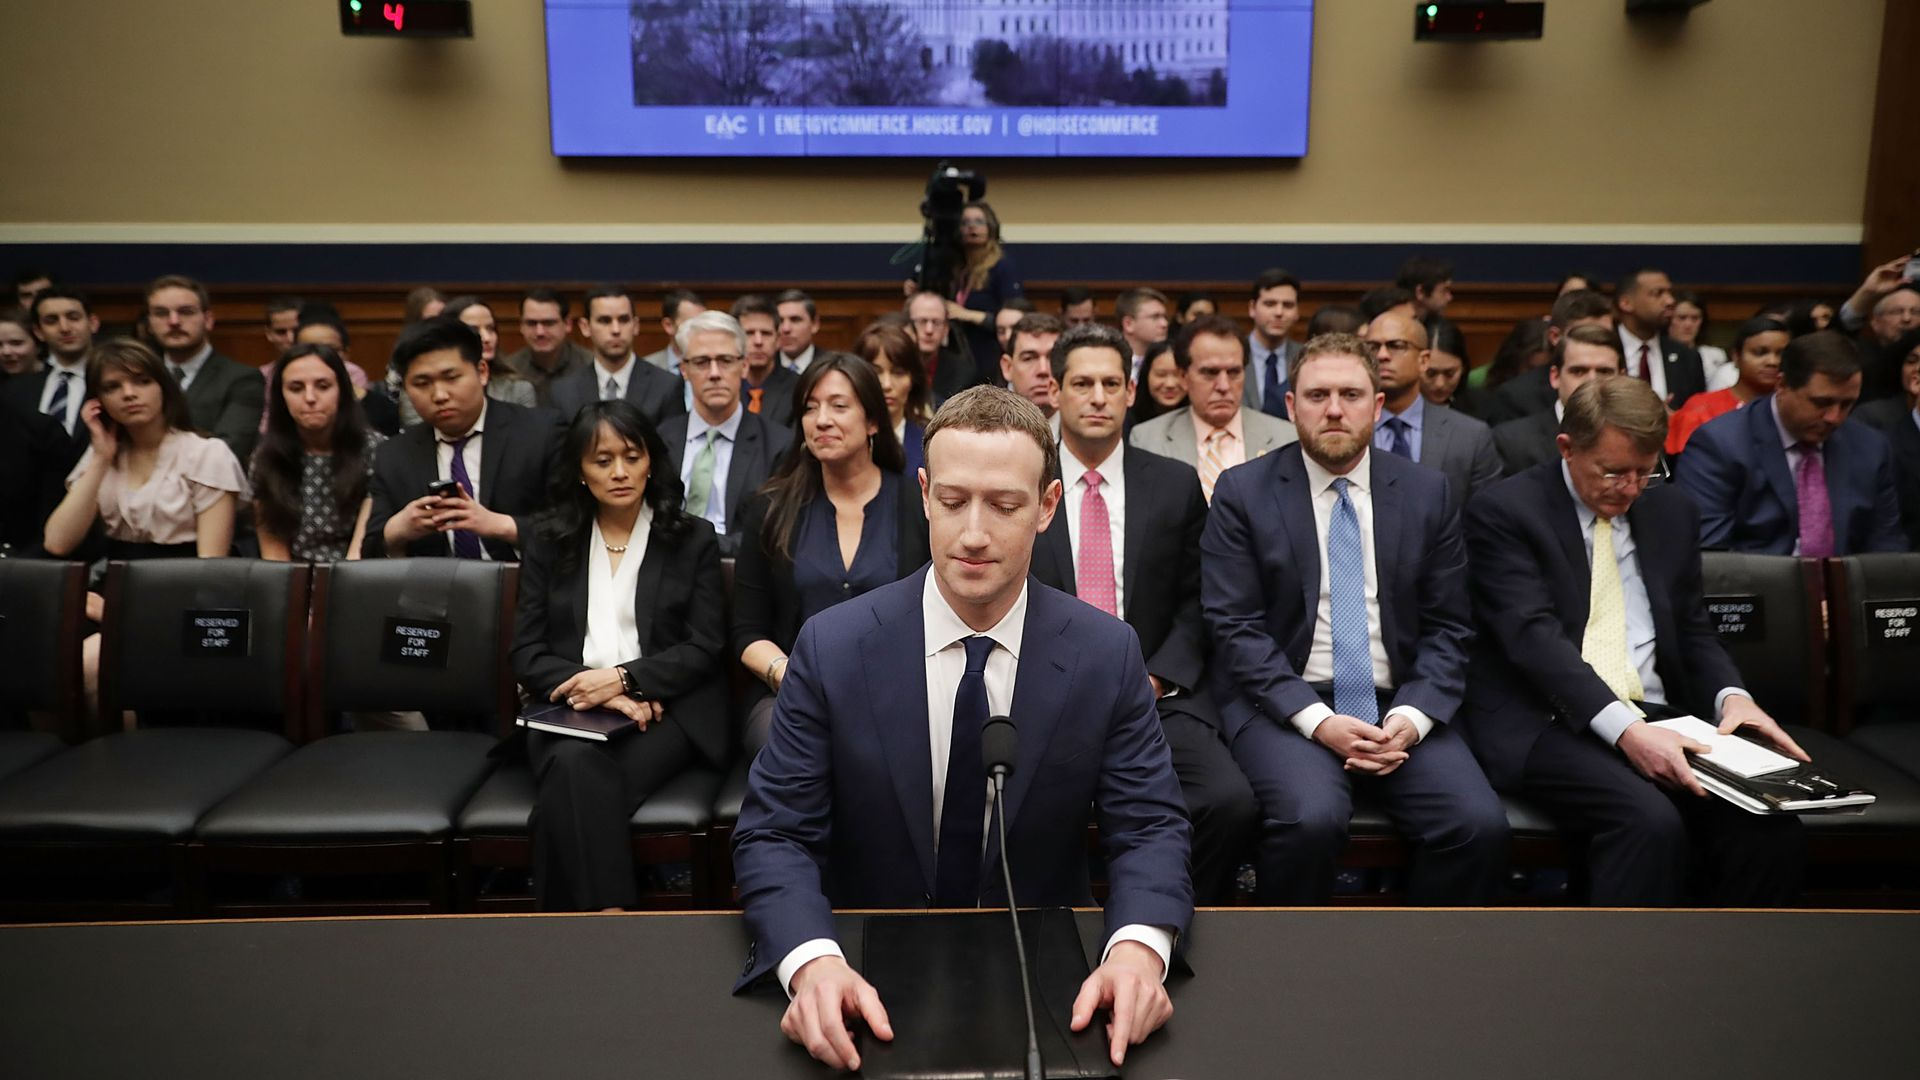 Mark Zuckerberg sits in front of spectators at one of his congressional hearings